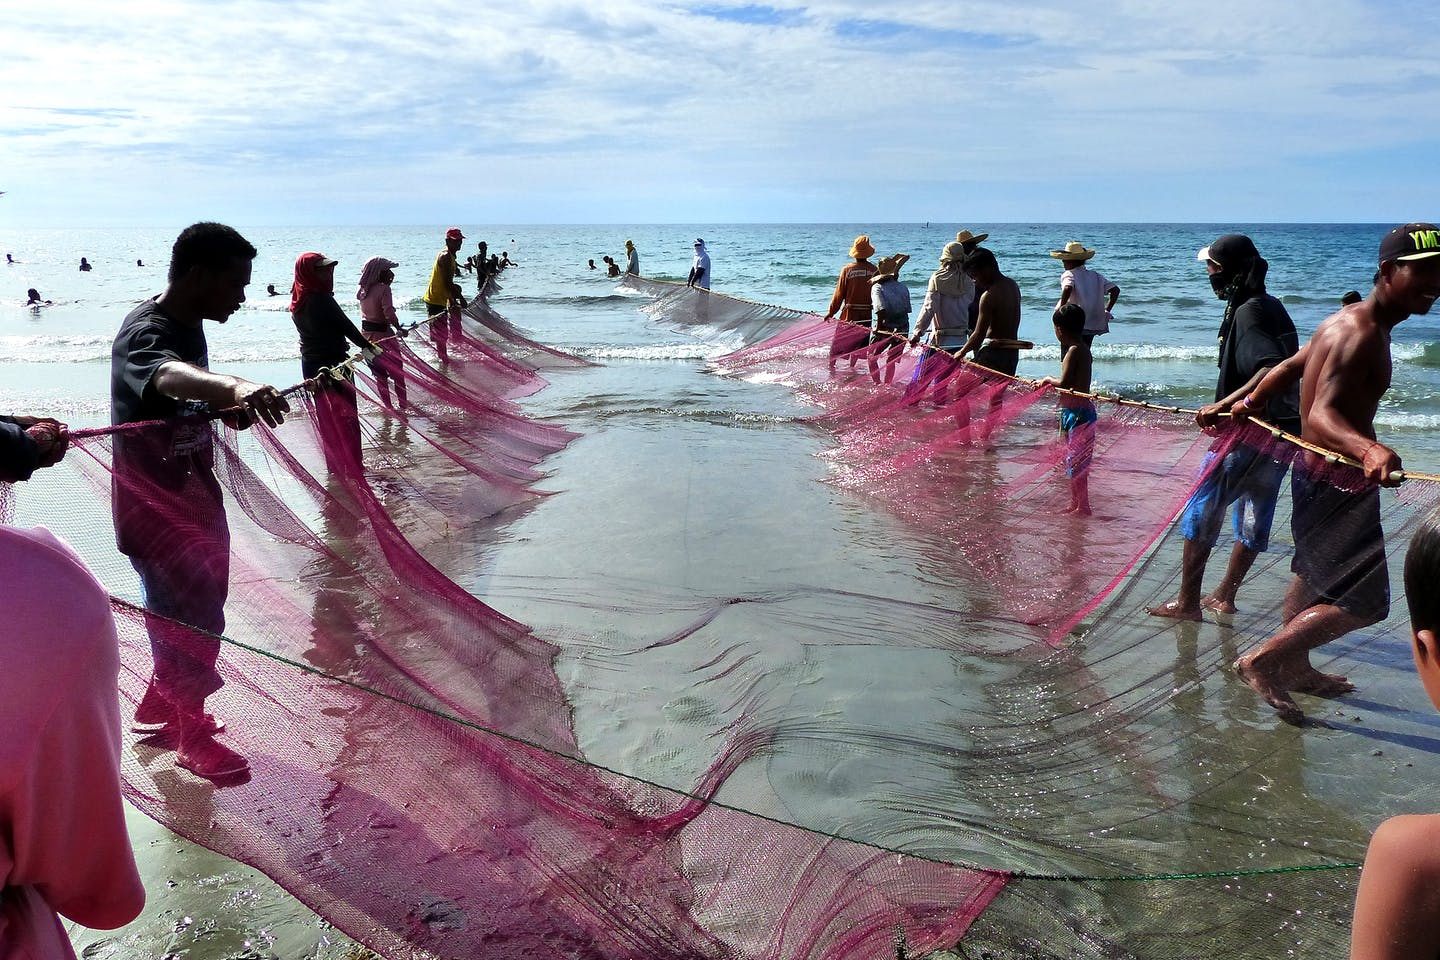 Fishermen and their corral net in the Philippines